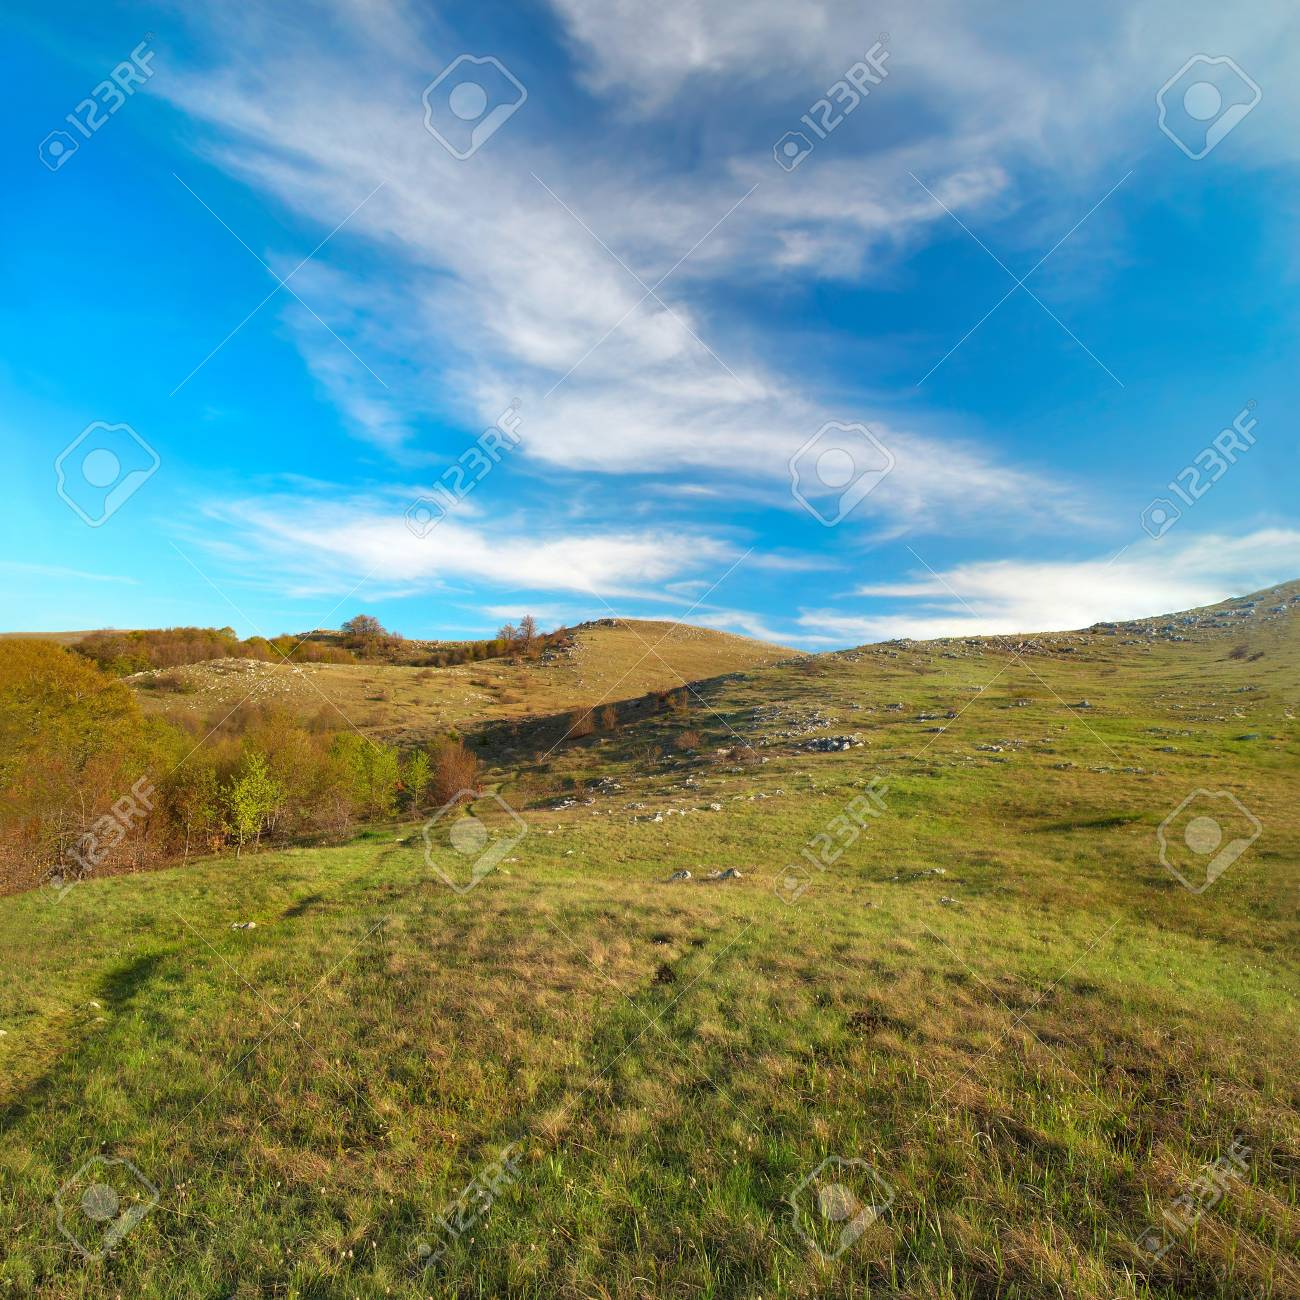 Hills with cloudscape and blue sky. Landscape. Stock Photo - 7068916